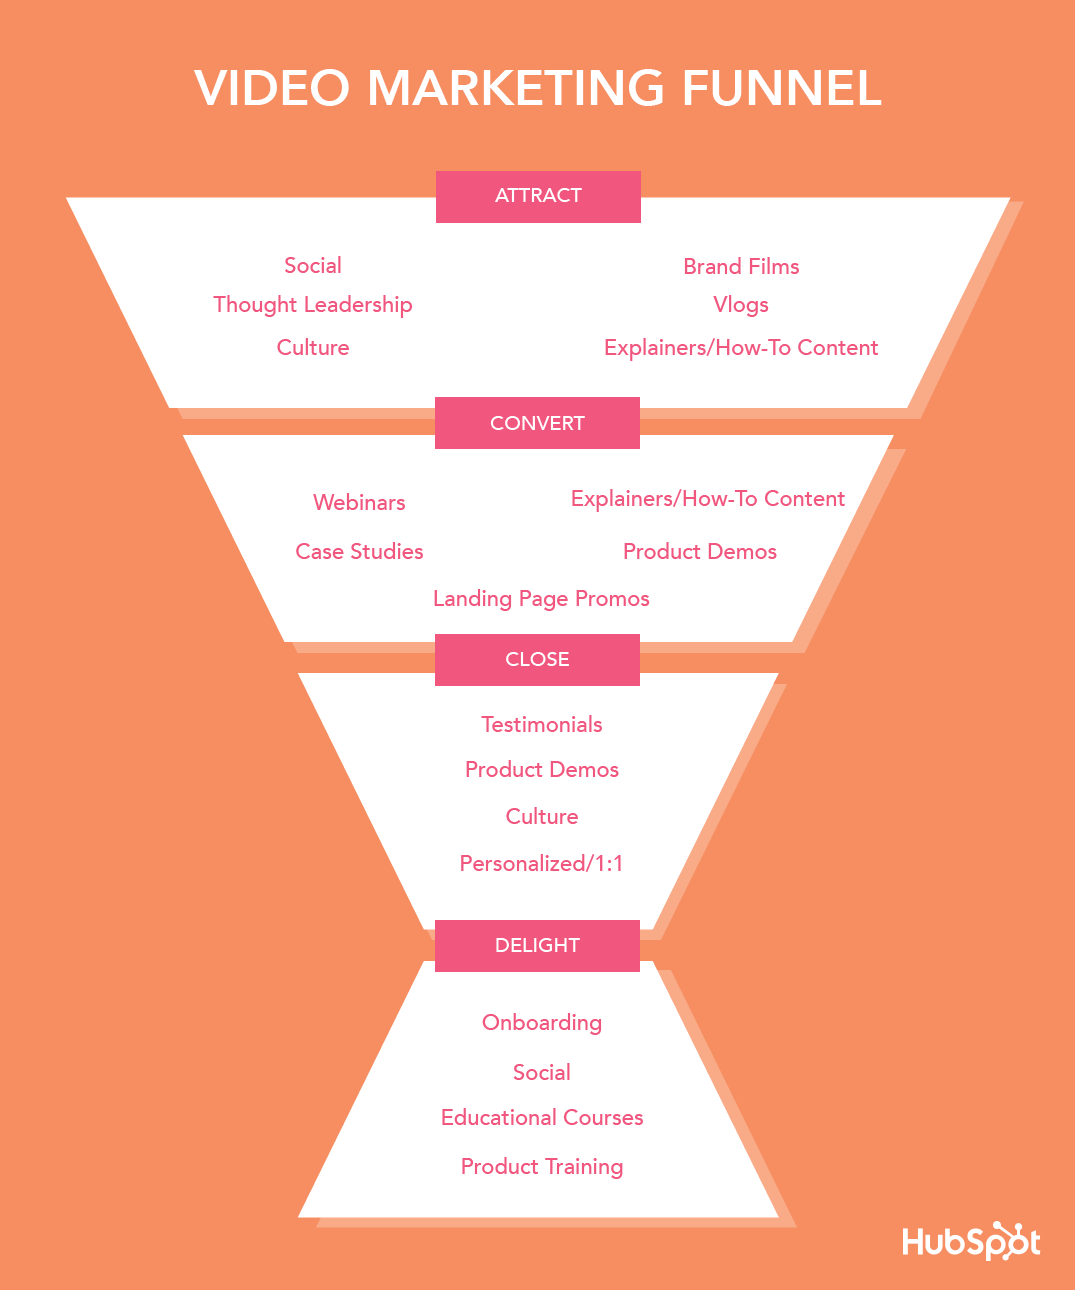 video-marketing-funnel-1.png